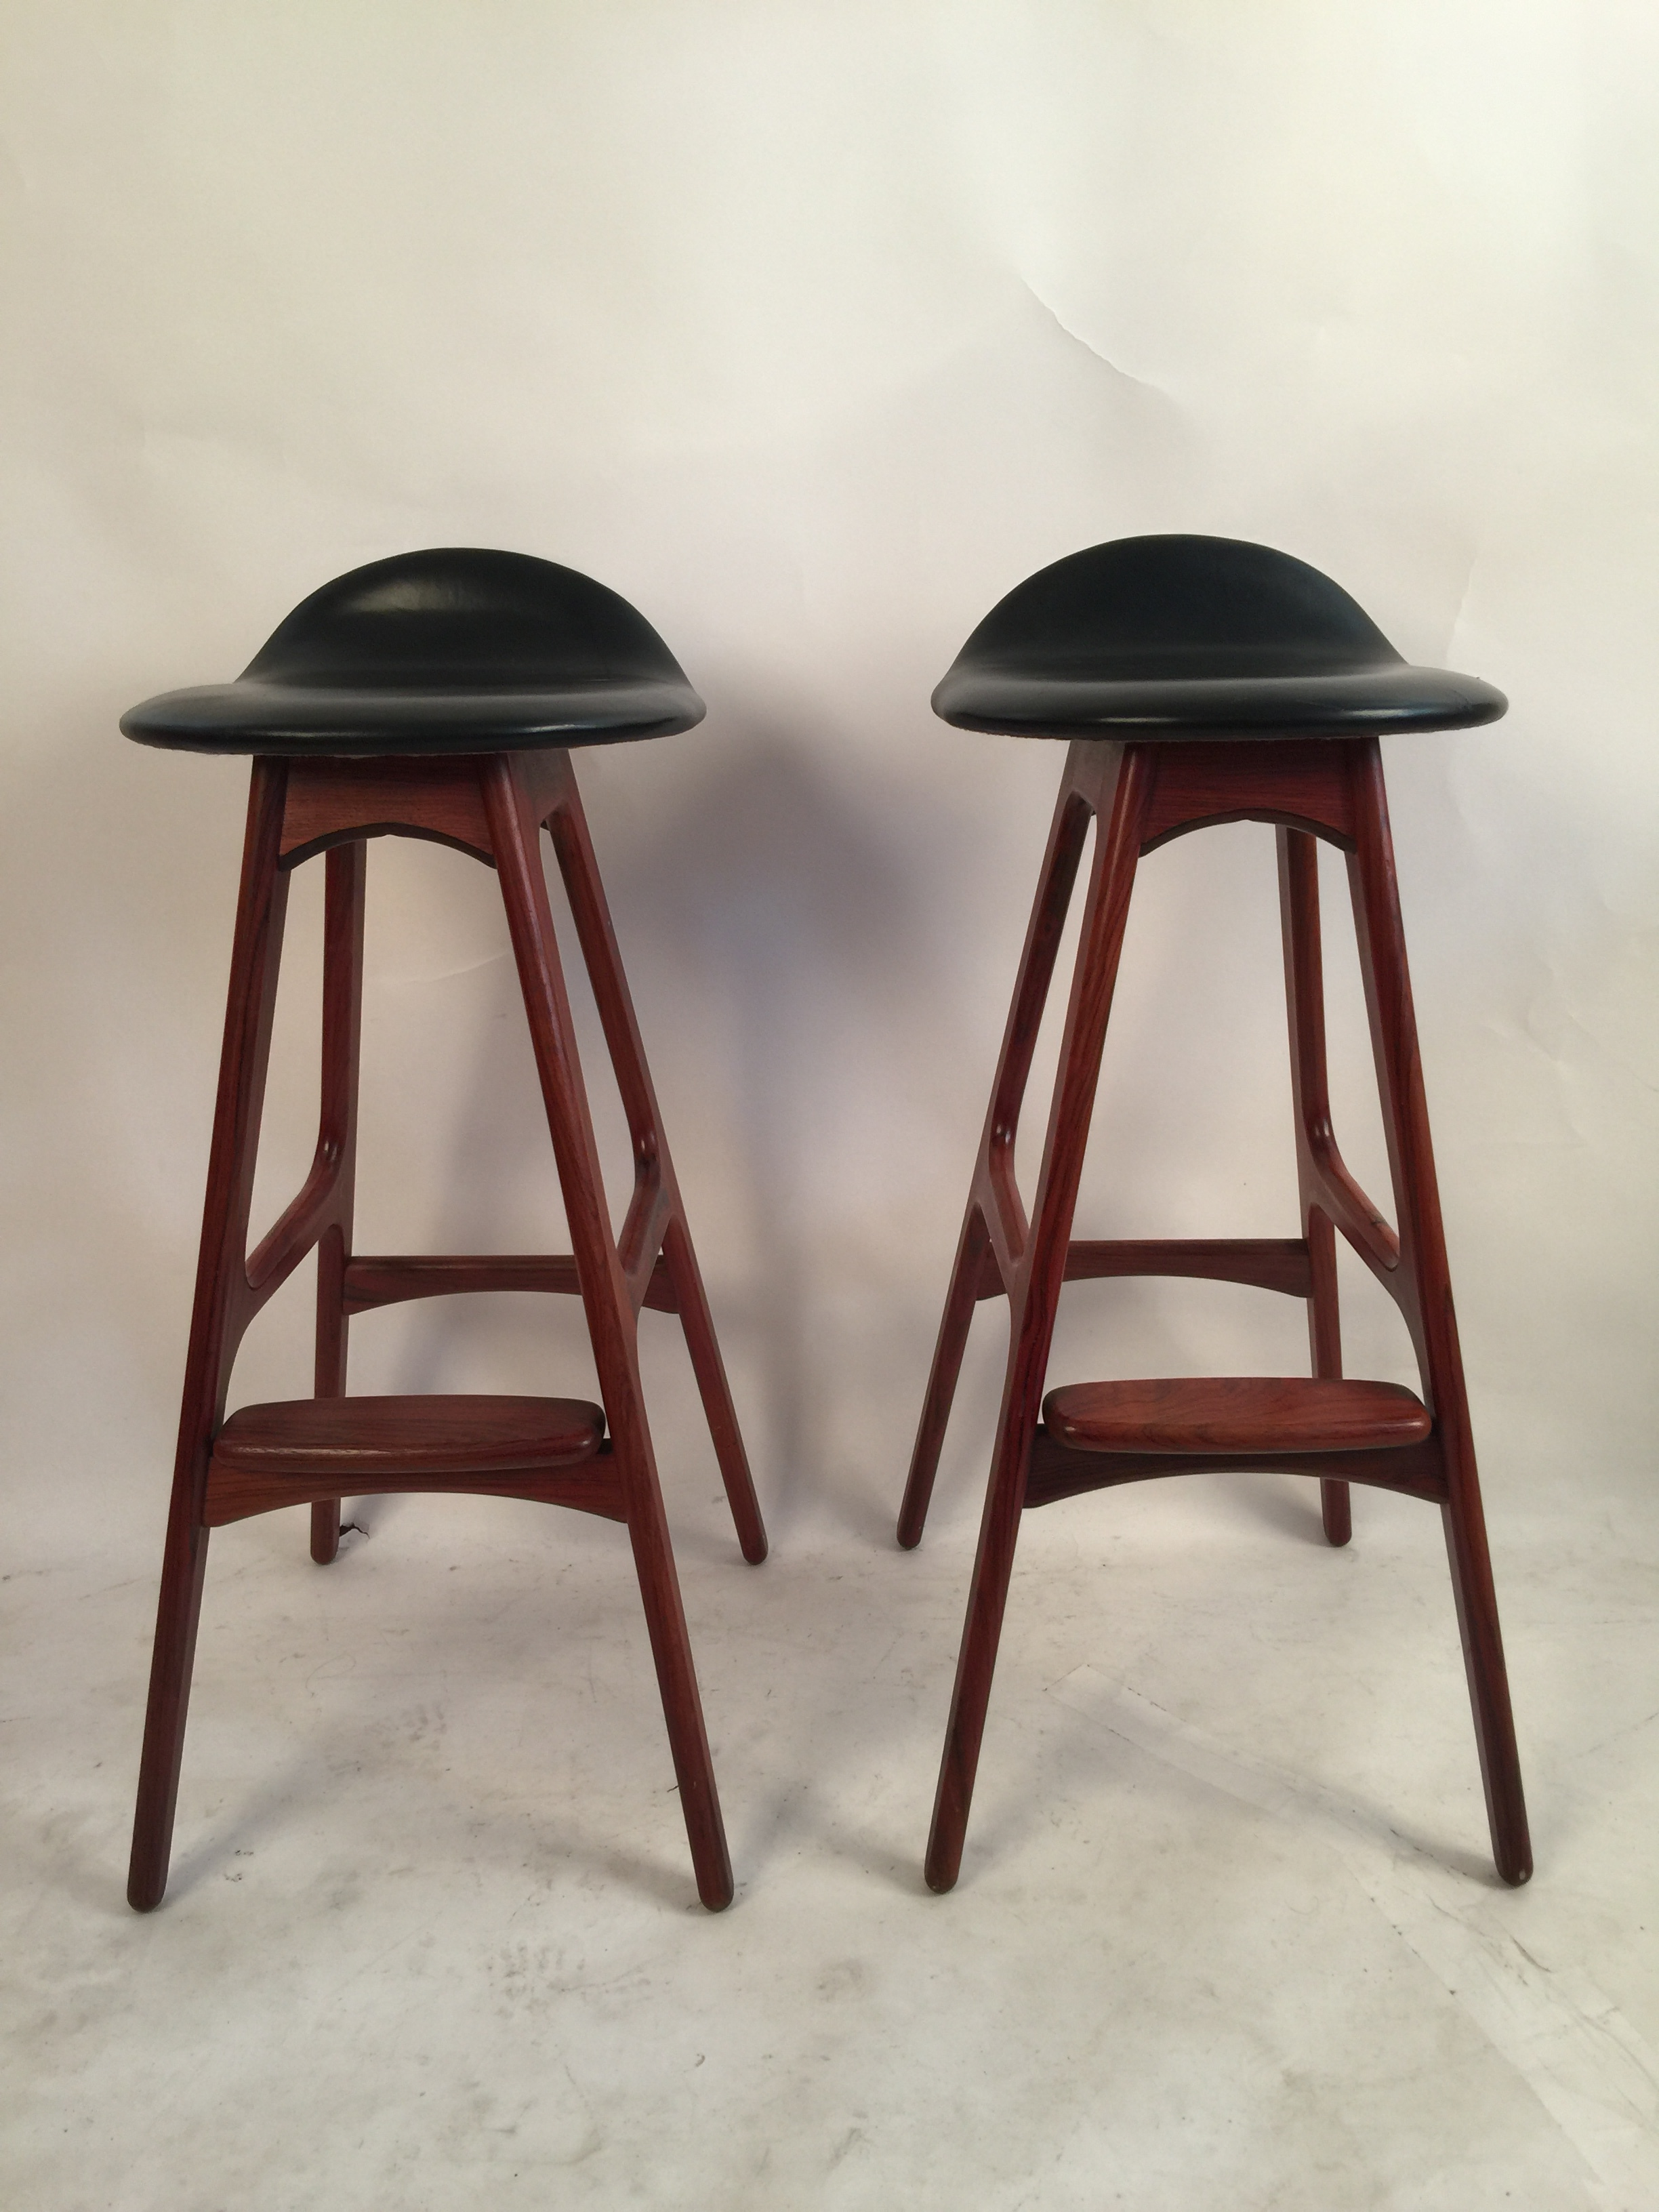 Erik Buck model OD61 bar stools